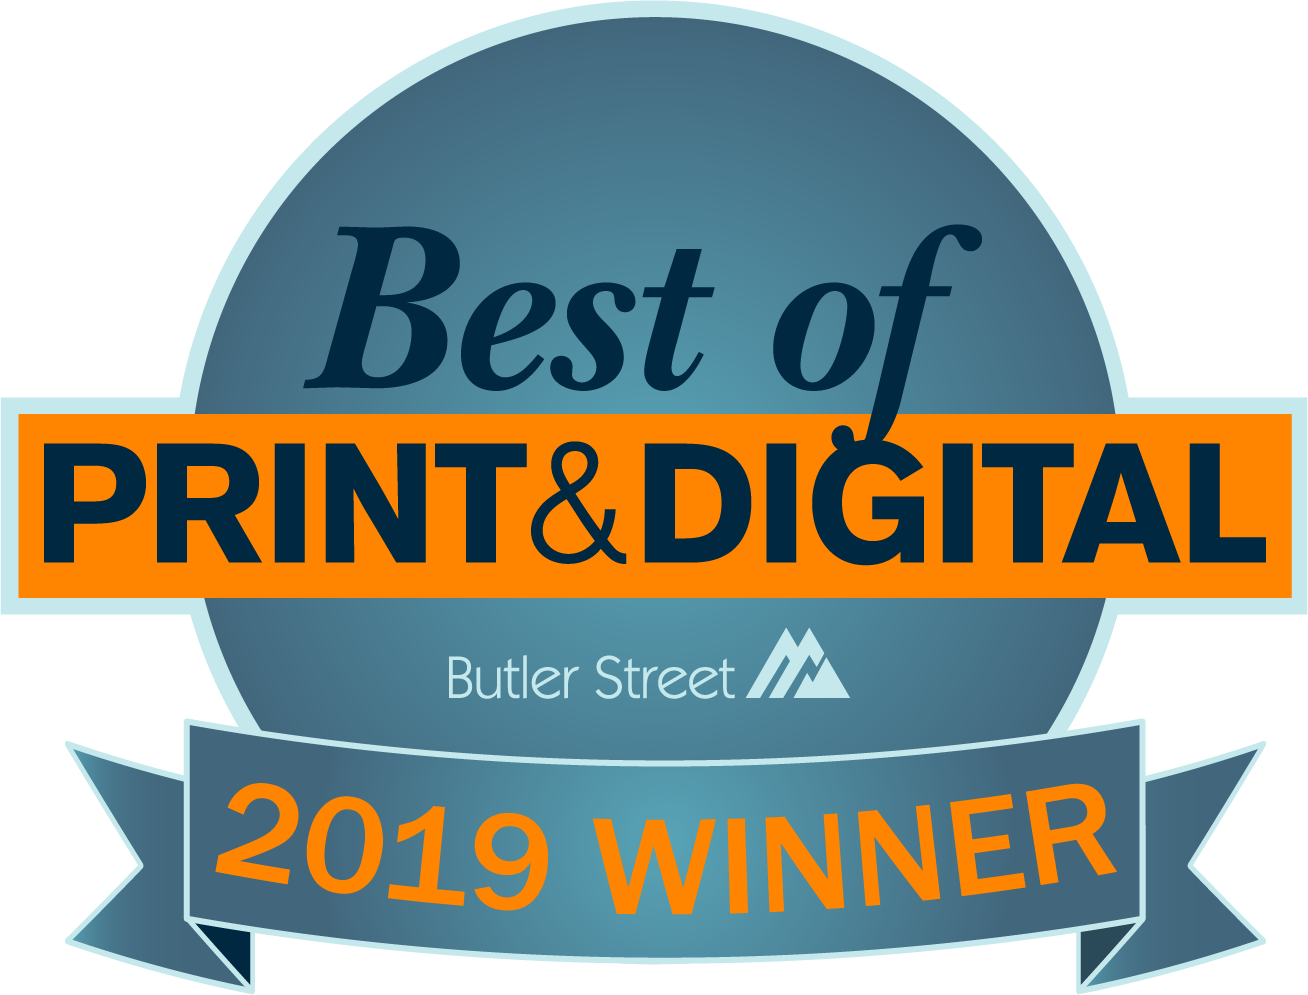 The Best of Print and Digital Award is based on independent survey research performed by Butler Street Research for the print and digital industry. A company's Net Promoter Score© is calculated by subtracting the % of Detractors (those who rated their likelihood to recommend a company with a 6 or below) from the % of Promoters (those rated them a 9 or a 10) . It focuses on client loyalty, not just satisfaction to measure the customer experience with an organization.